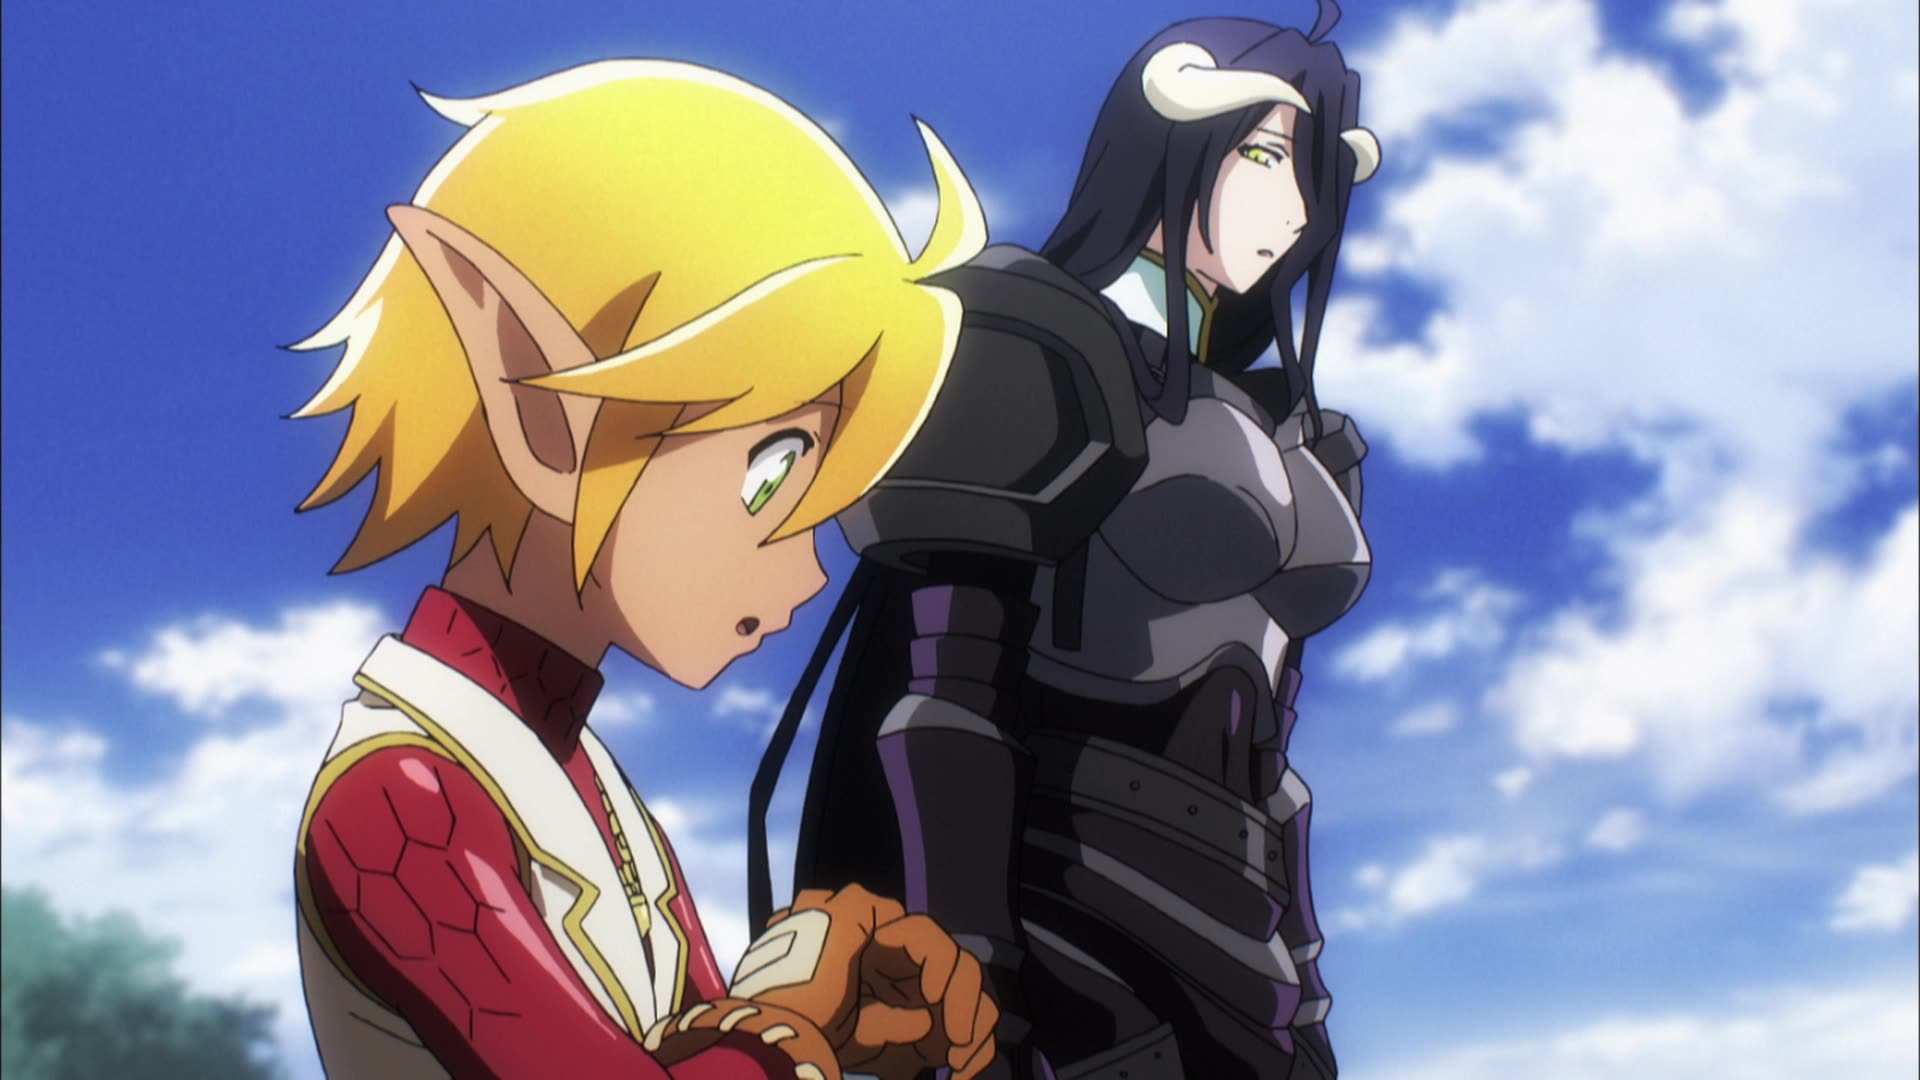 Overlord III Episode 1, A Ruler's Melancholy, - Watch on Crunchyroll